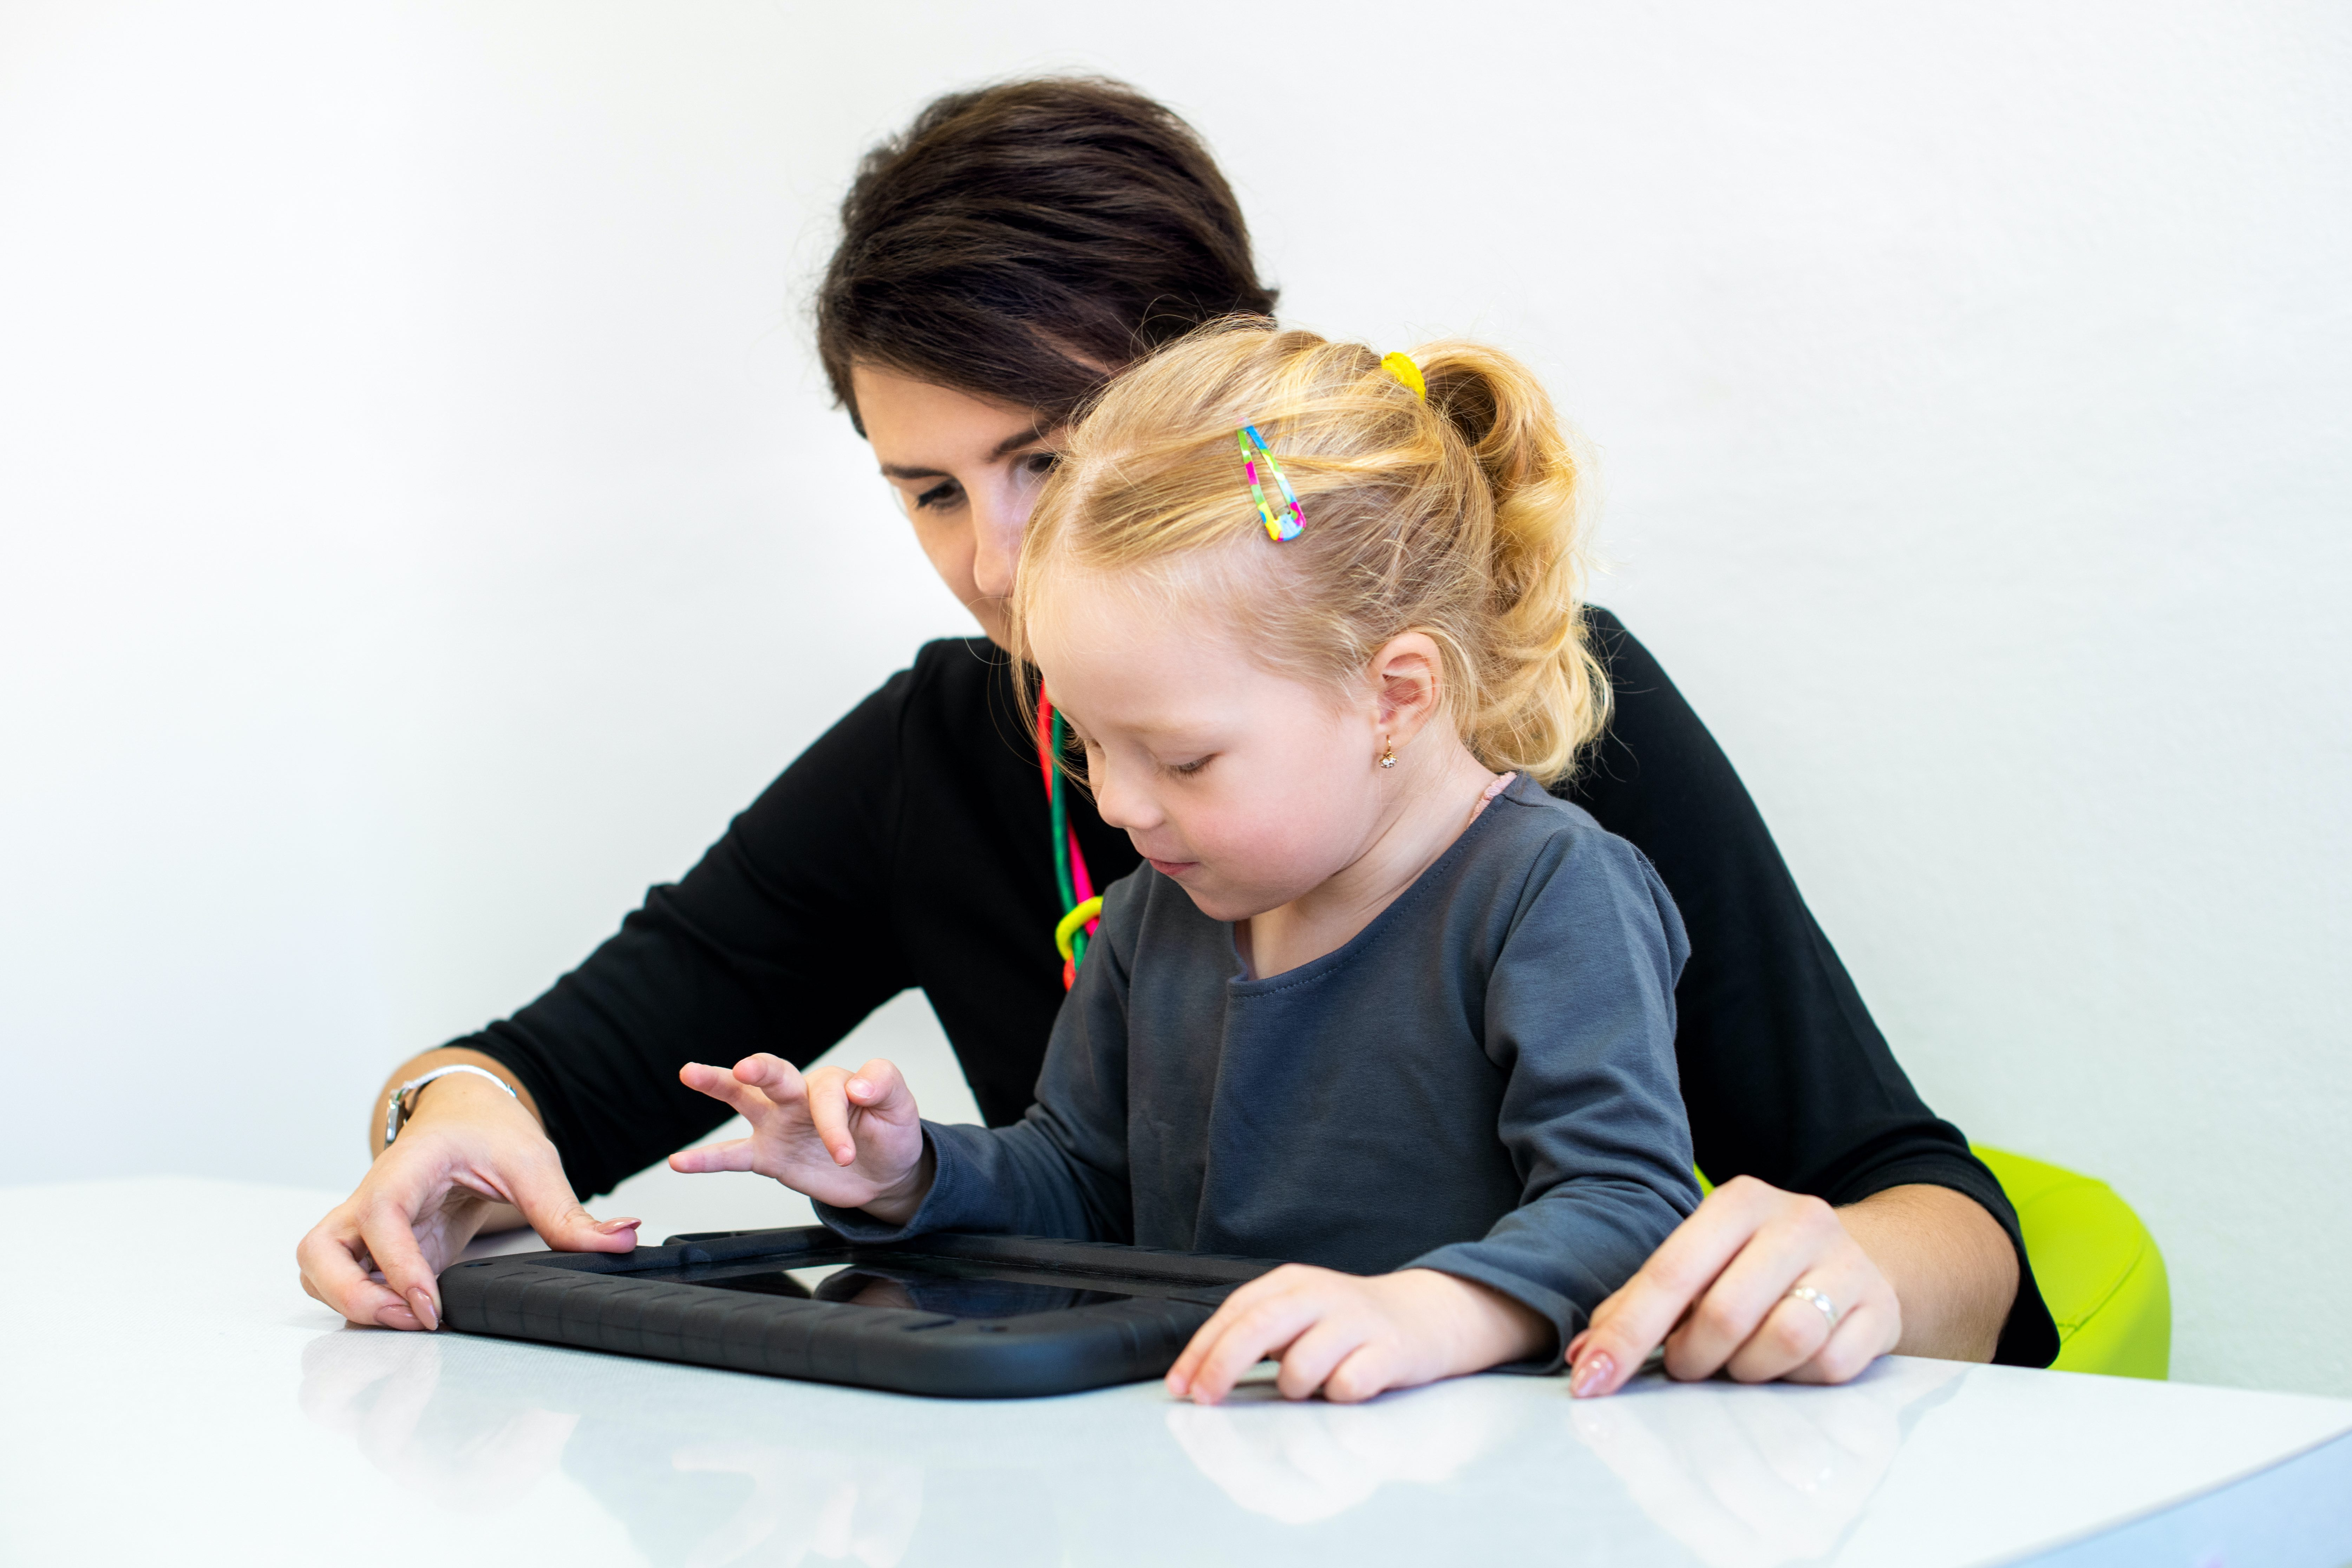 therapist using a tablet with a little girl